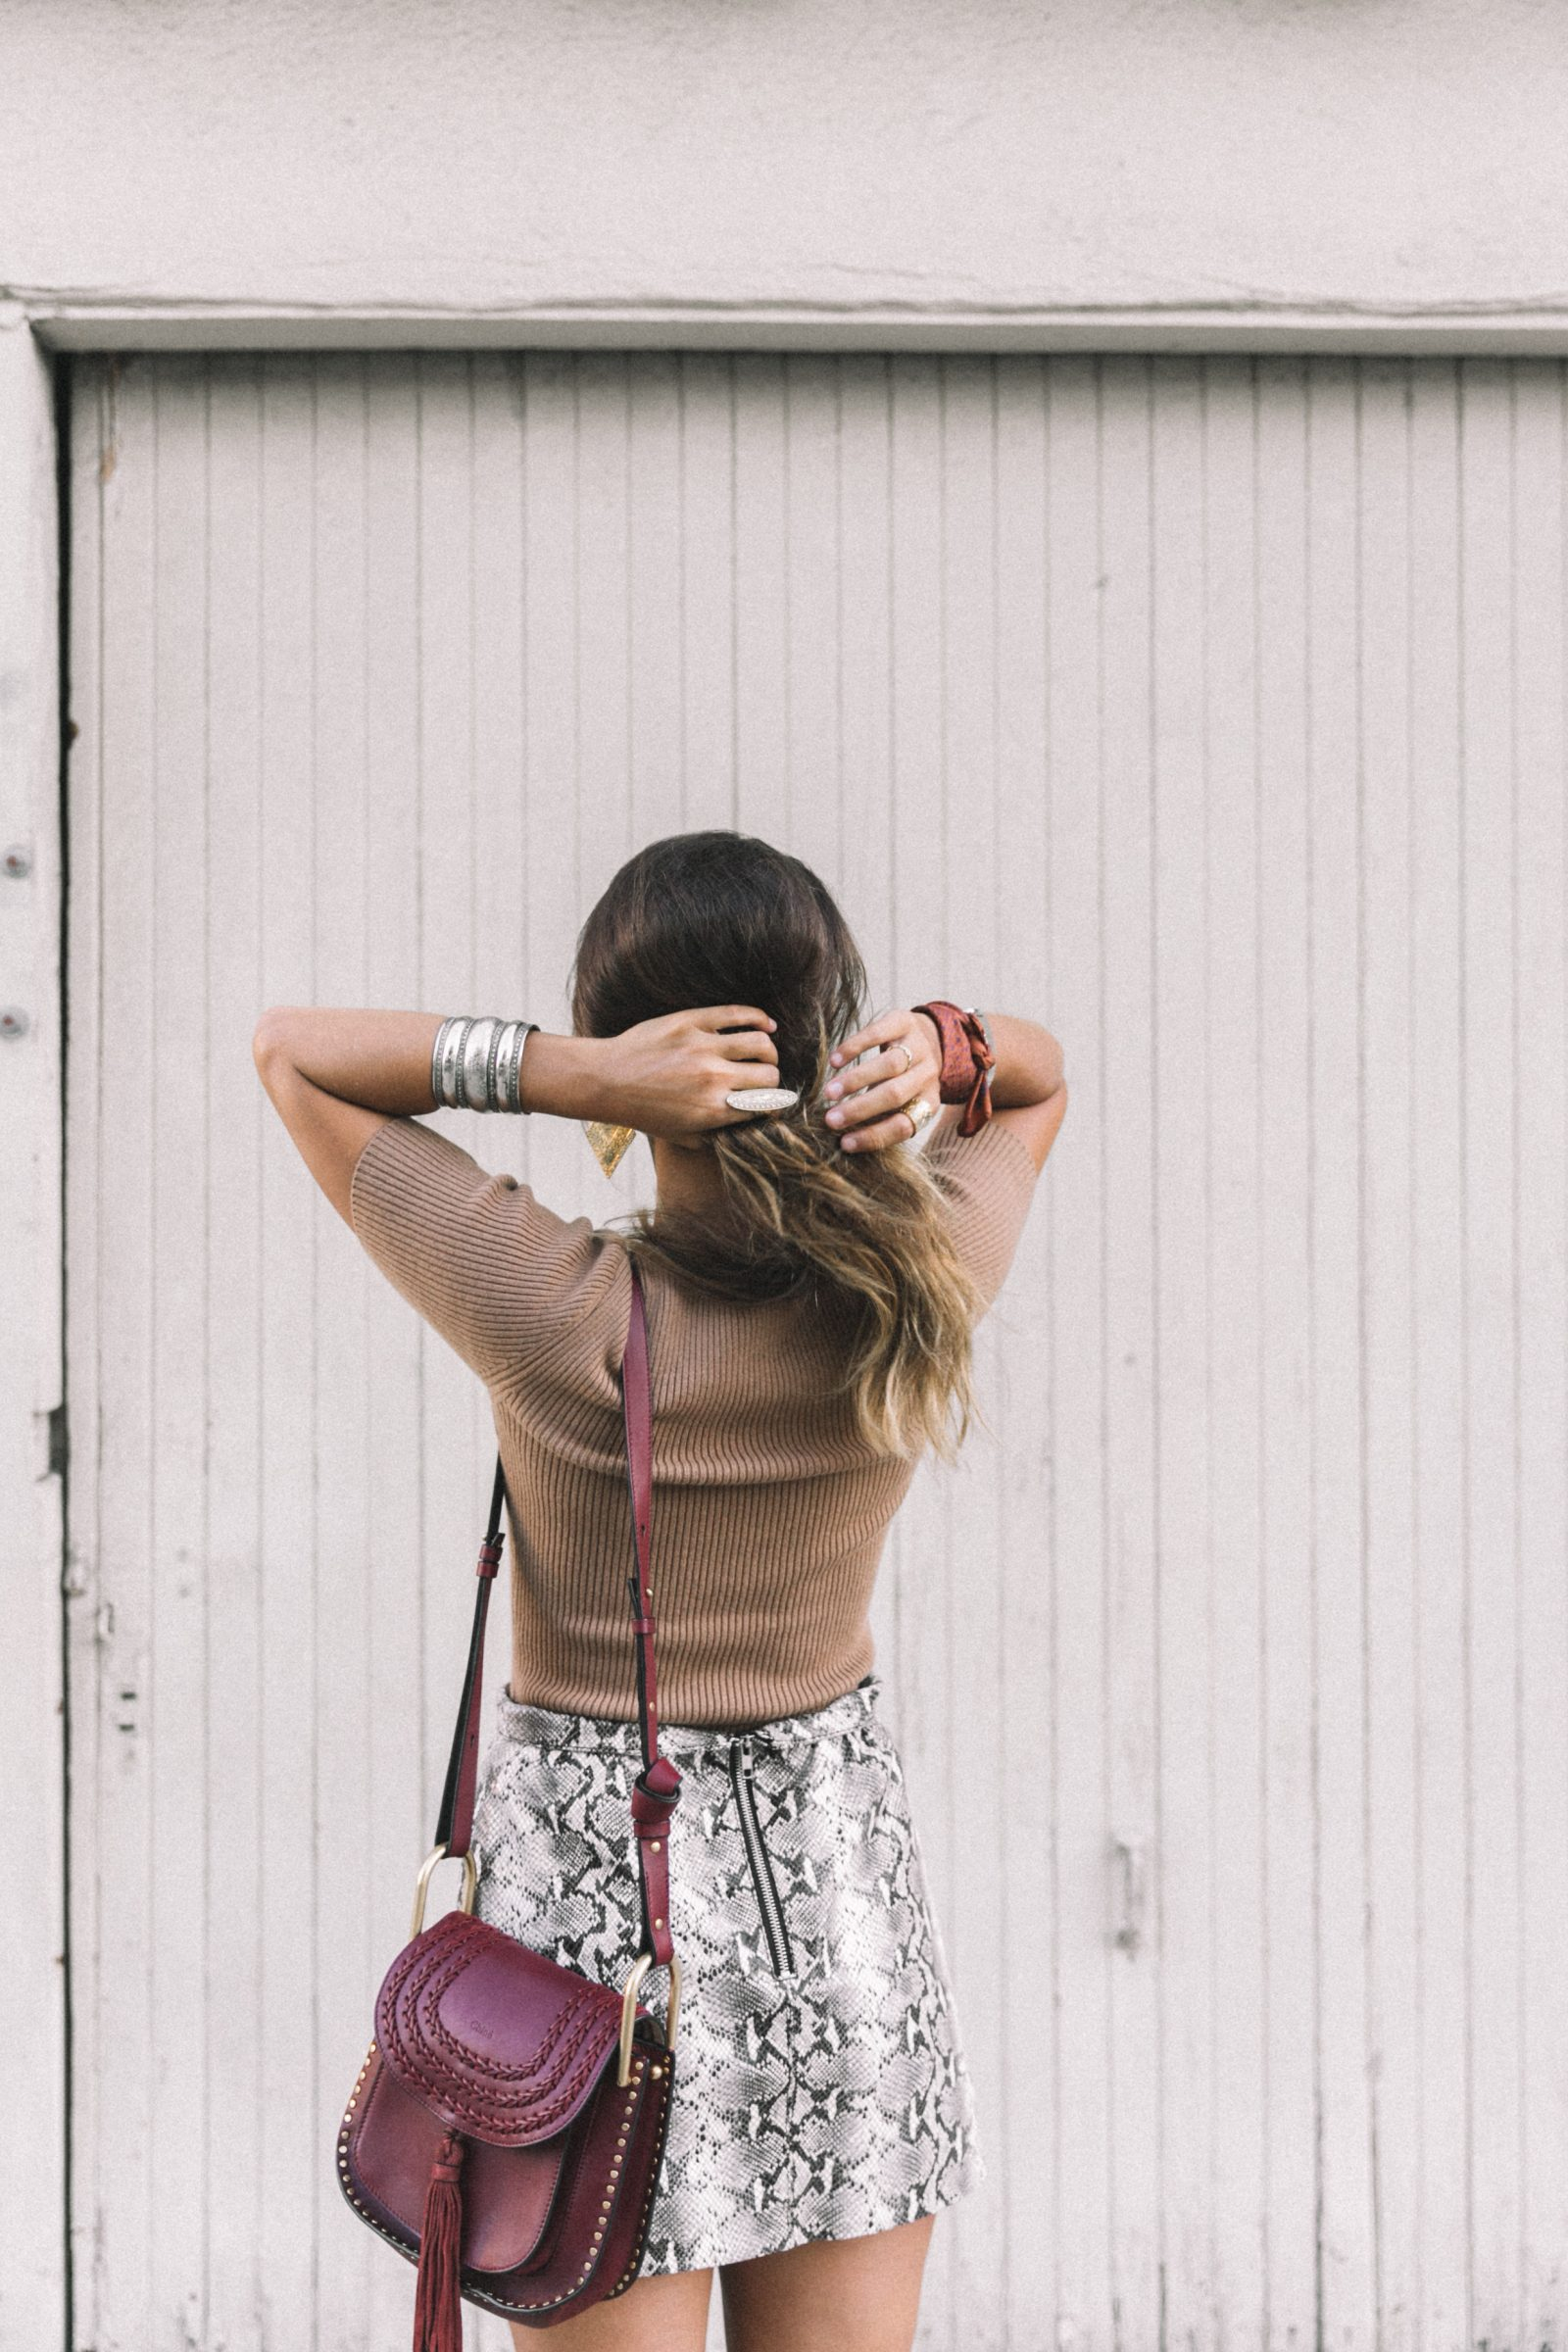 lpa_the_label-revolve_clothing-snake_skirt-lace_up_sweater-knotted_sandals-chloe_hudson_bag-outfit-street_style-los_angeles-68